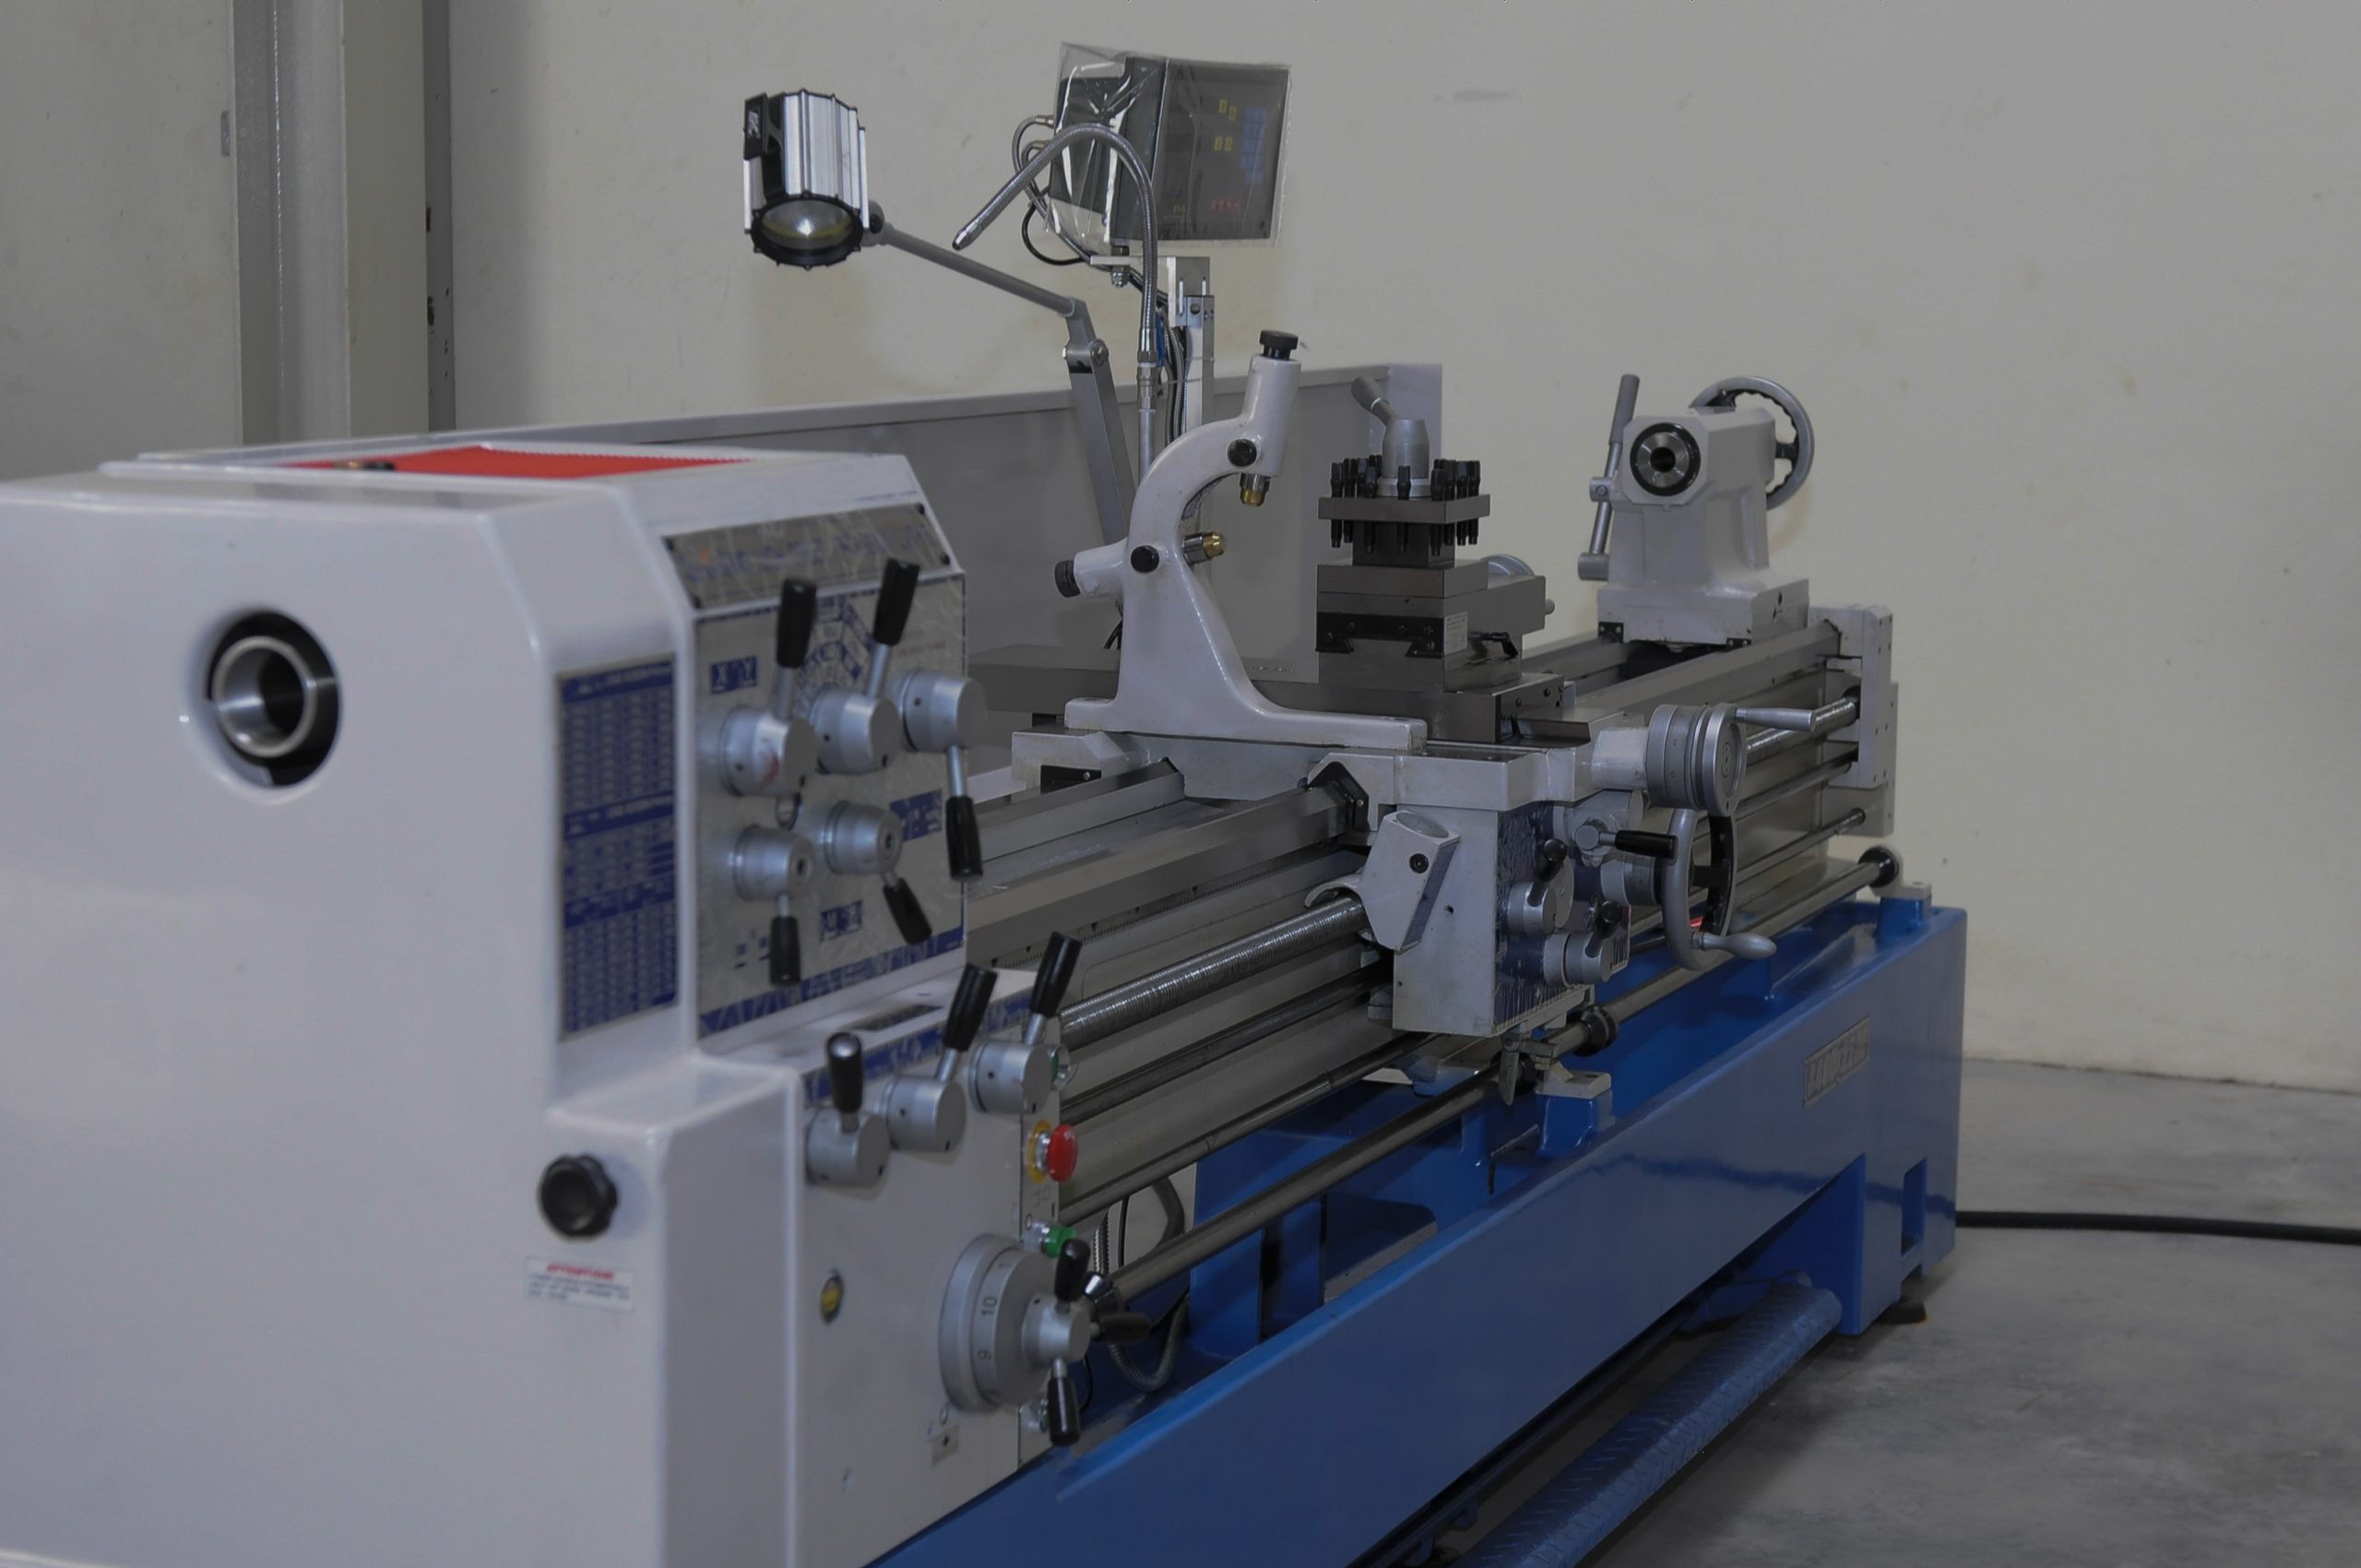 Equipment Photo 3- horizontal lathe machine